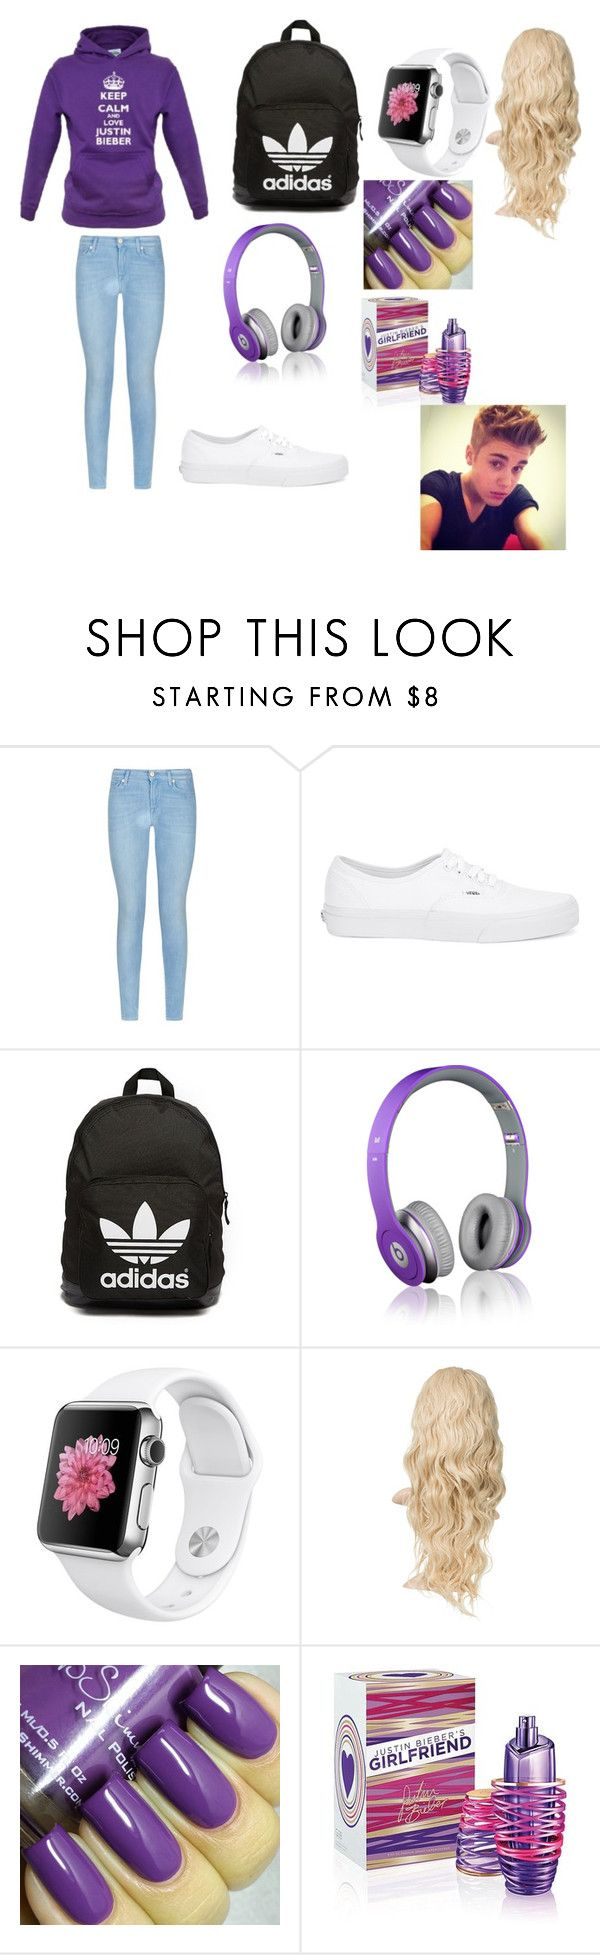 """justin bieber concert outfit"" by meriahc ❤ liked on Polyvore featuring Justin Bieber, 7 For All Mankind, Vans, adidas Originals, Beats by Dr. Dre, women's clothing, women's fashion, women, female and woman"